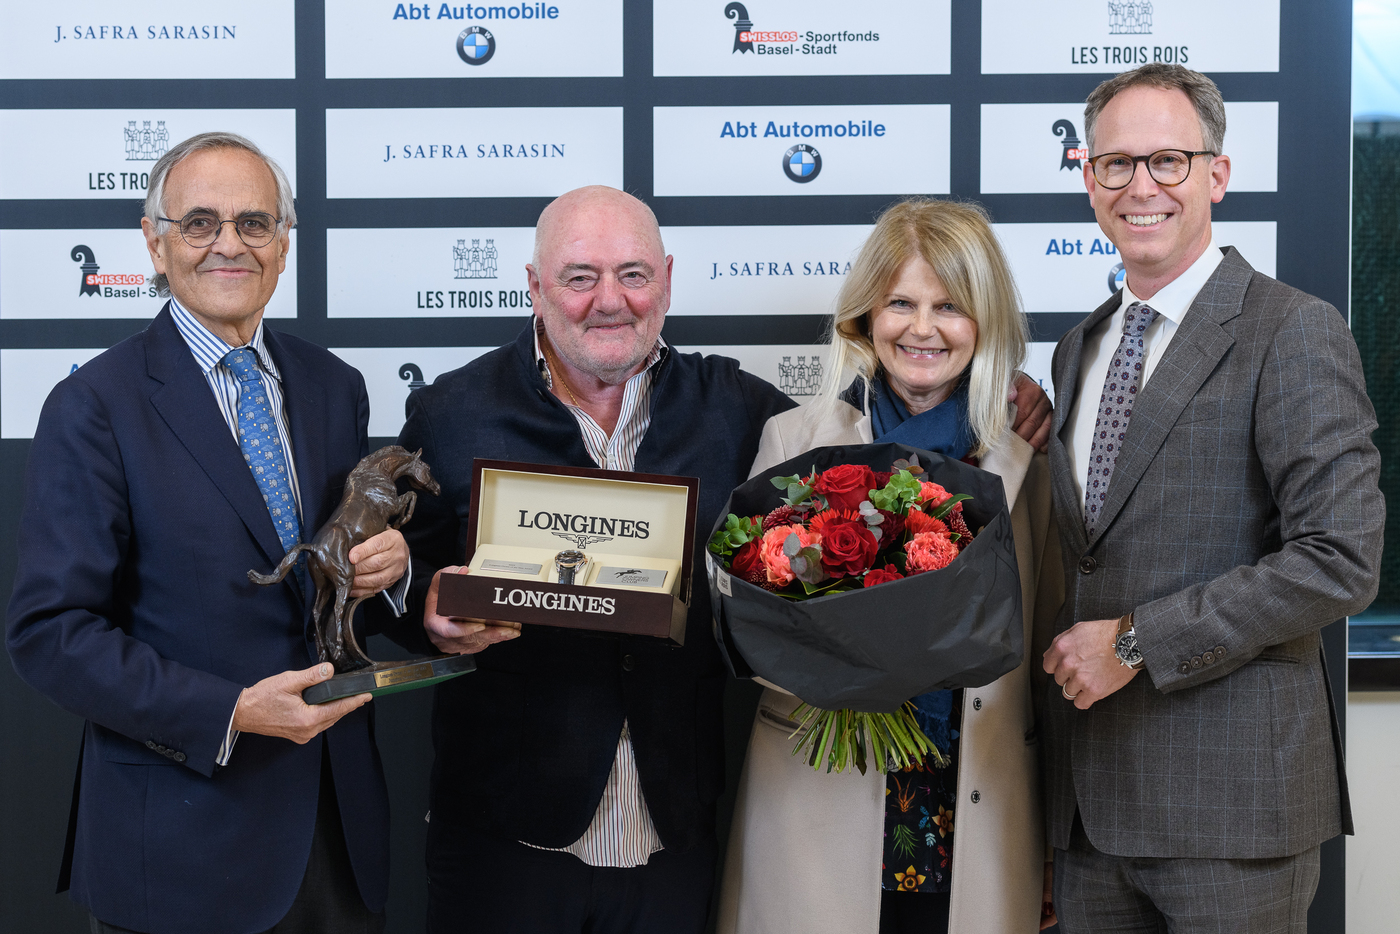 Longines Show Jumping Event: Luigi Baleri is the 2019 Longines Owner of the Year 2